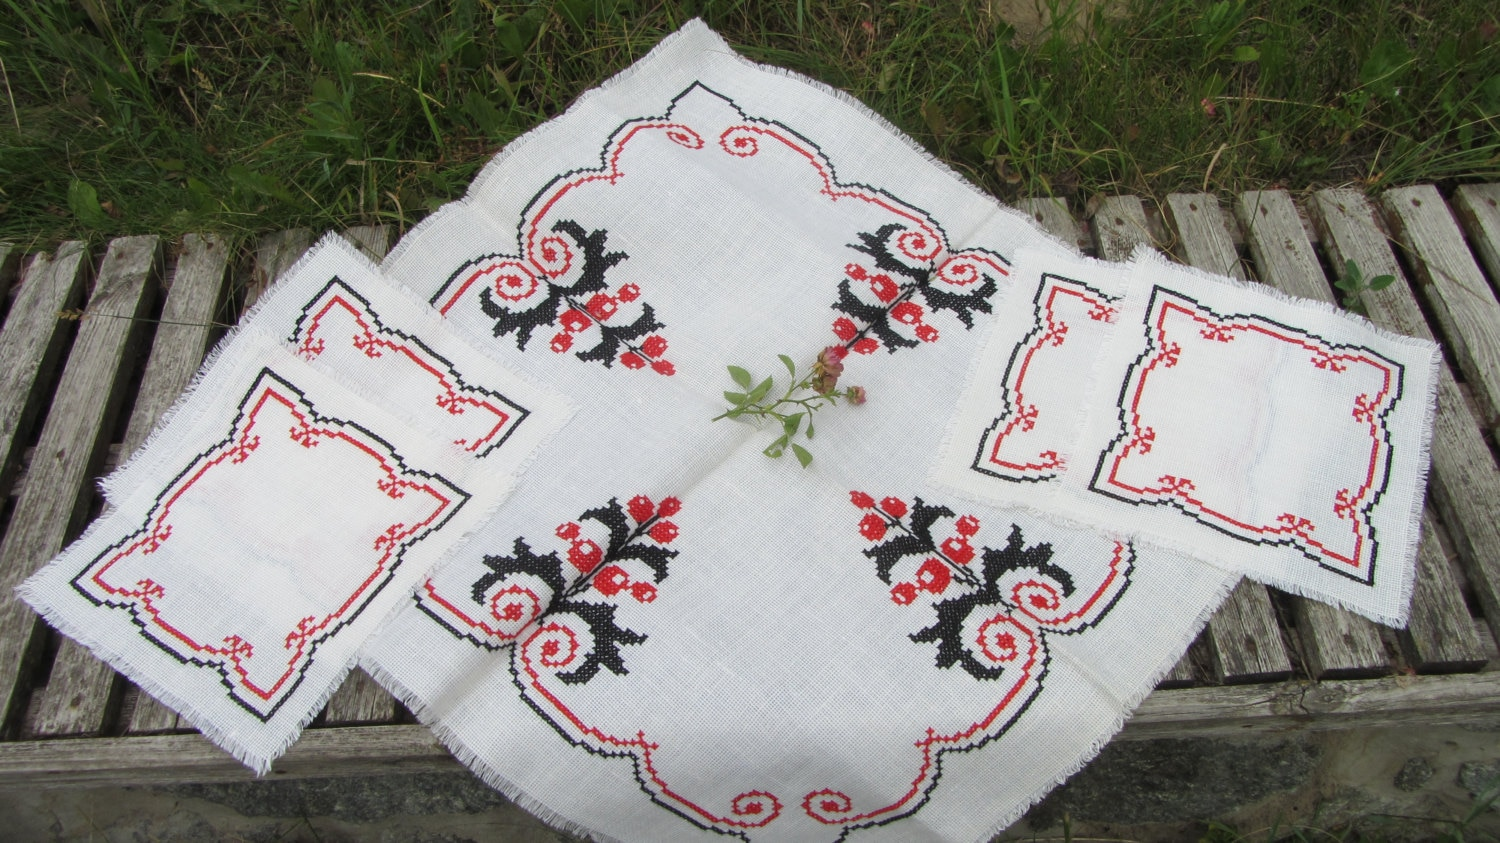 Vintage Handmade TableCloth Cross Stitch, Needlepoint, with diametrical ornament